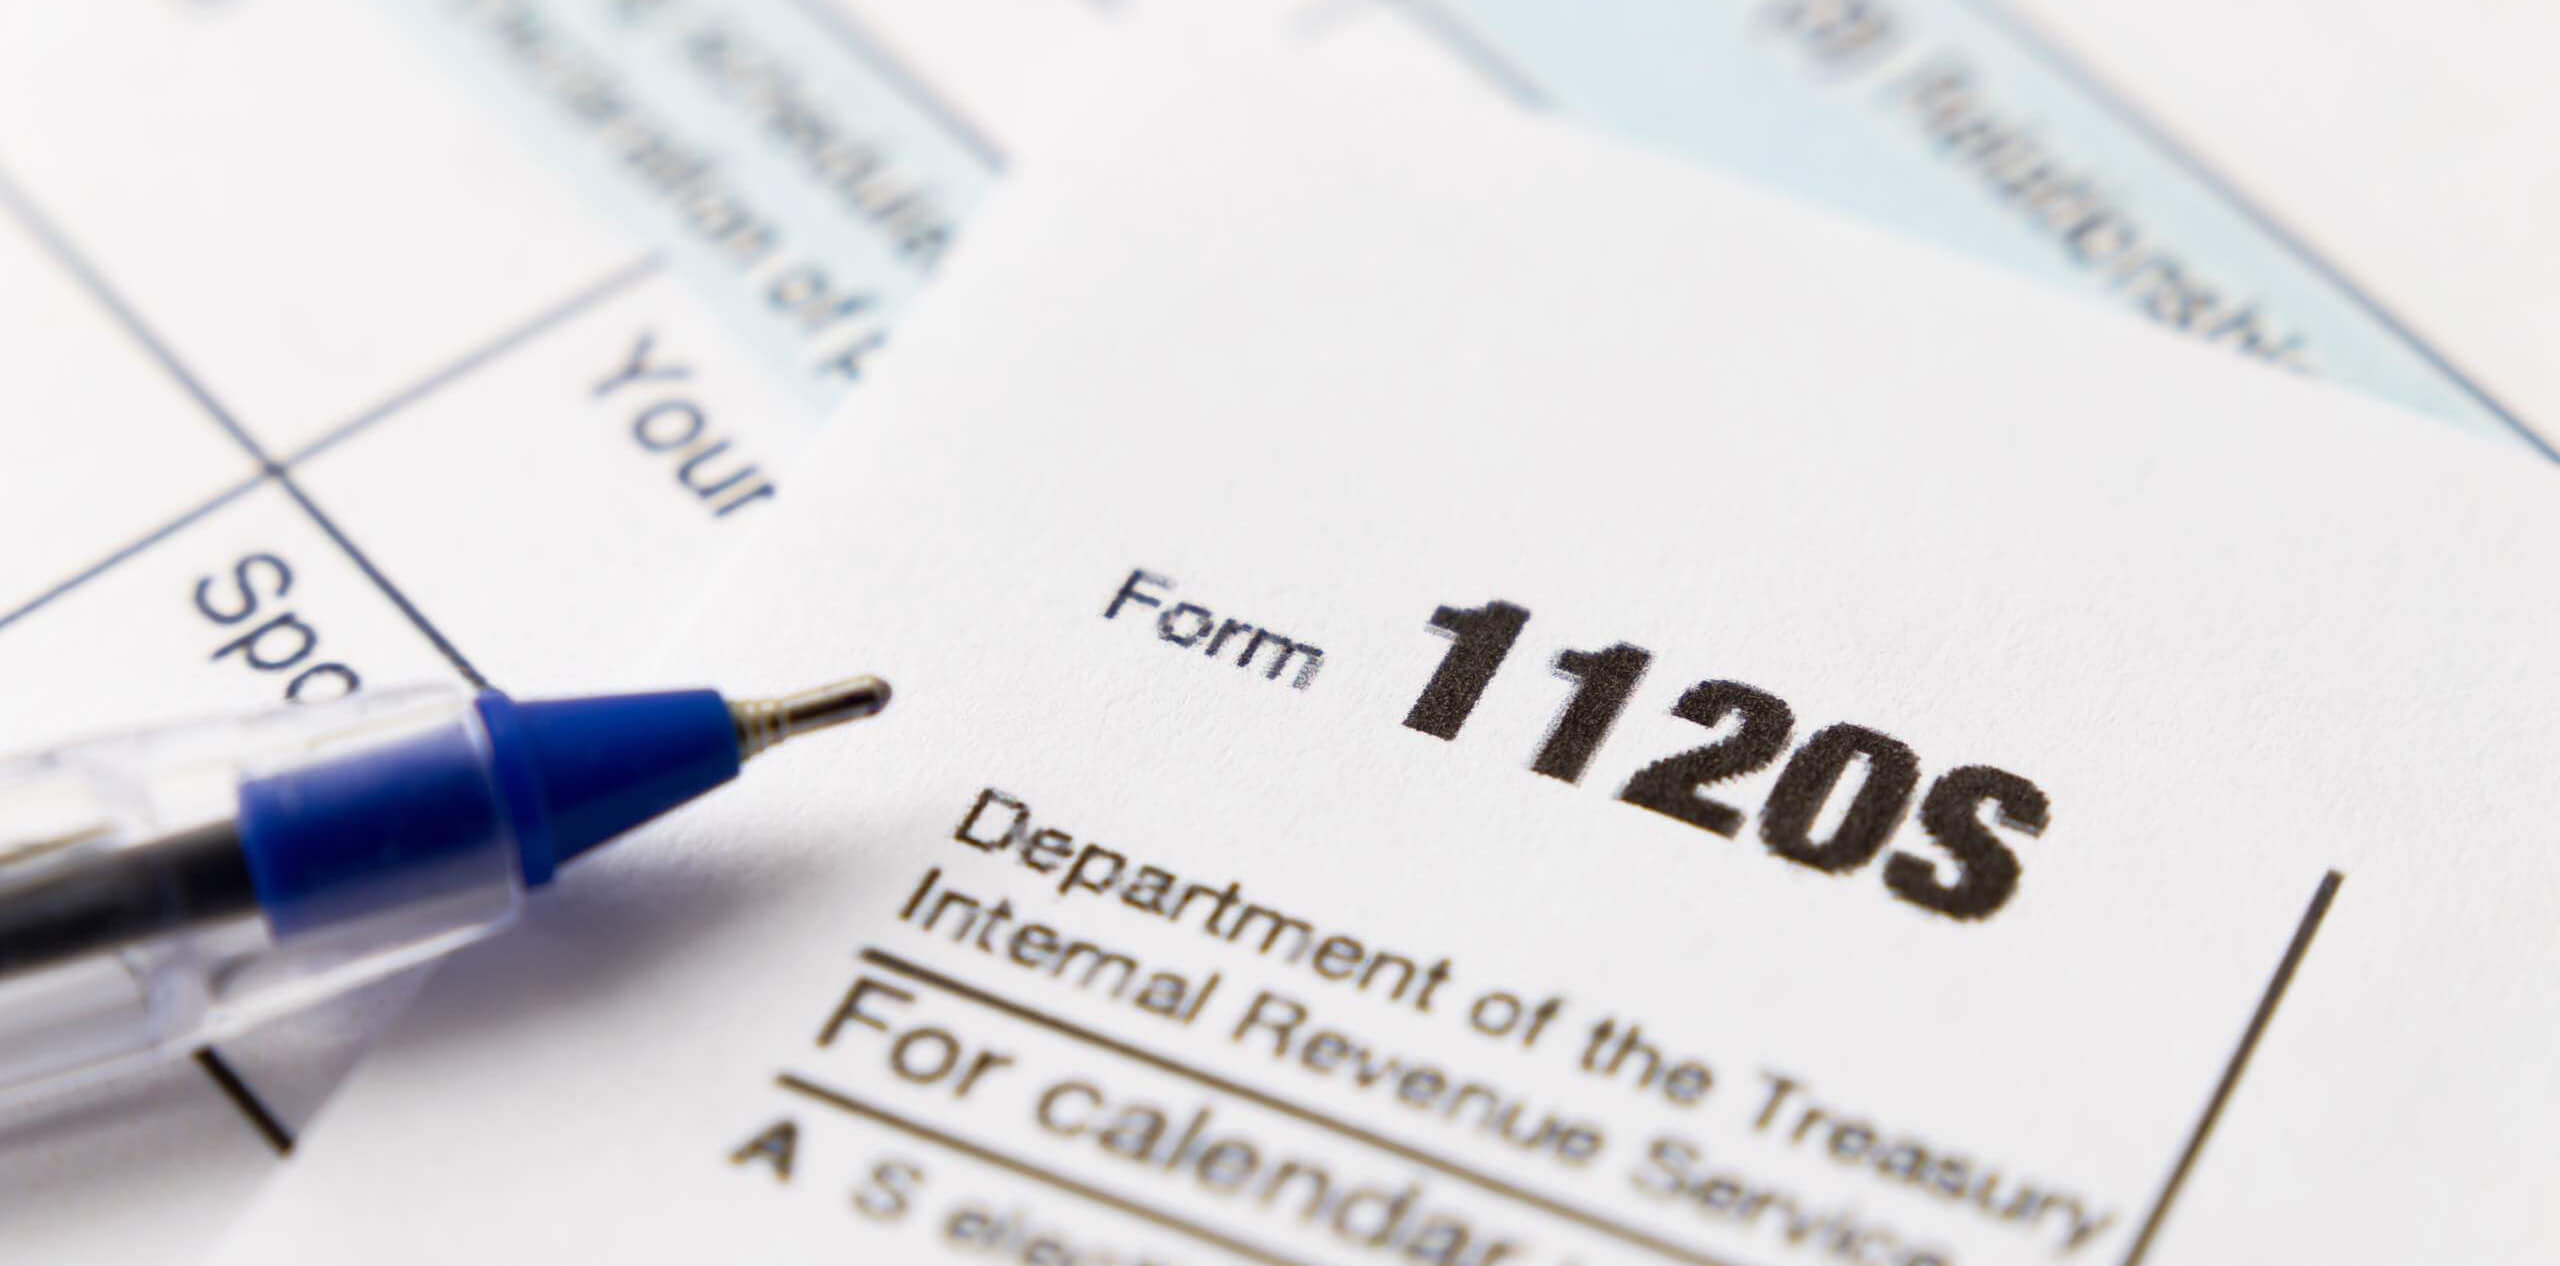 Tax forms on a table with a pen laying on top